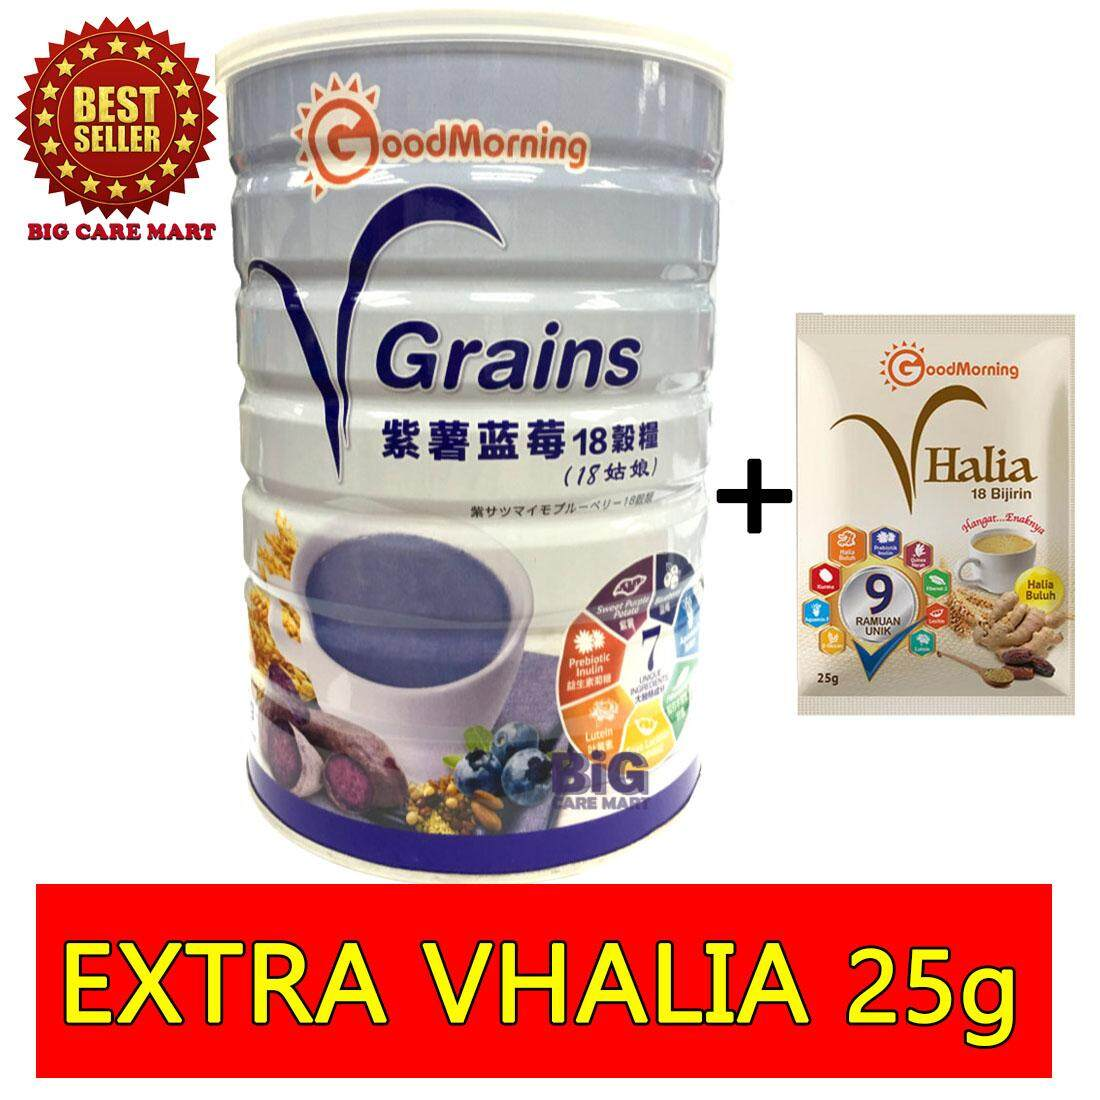 Good Morning Vgrains 18 Grains 1kg + 1 Vhalia Sachet 25g By Big Care Mart.